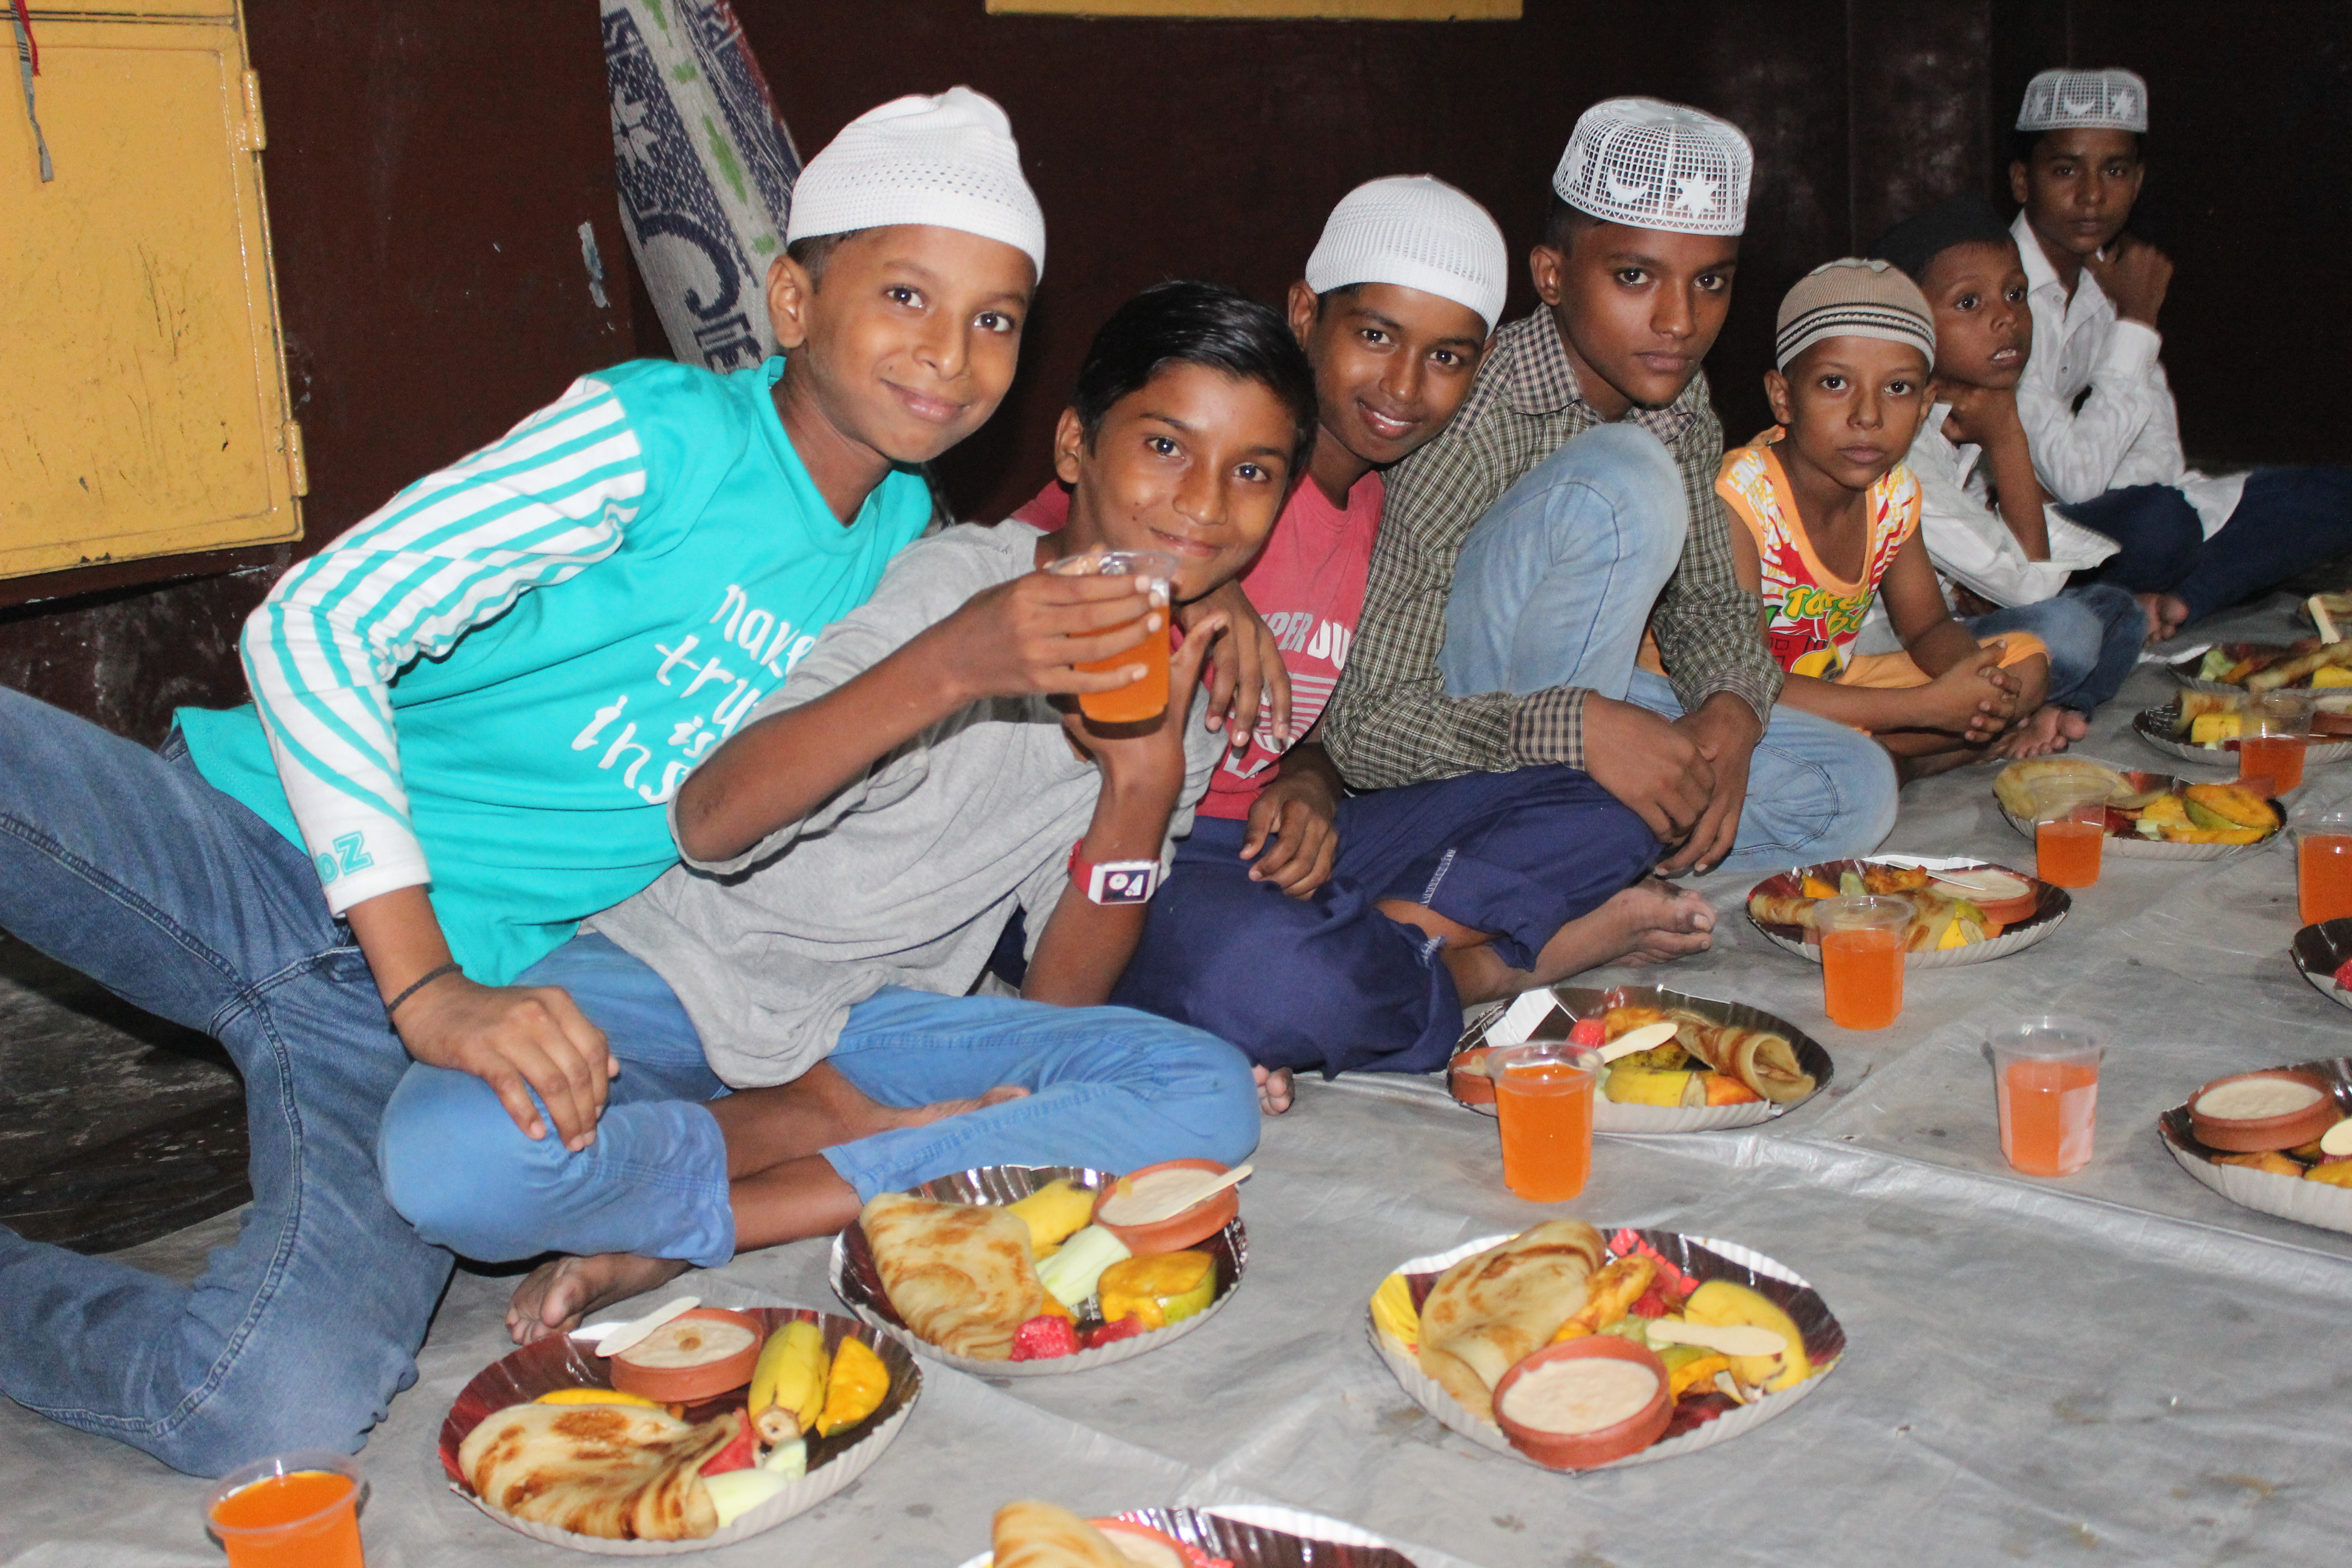 Generous Donors provide Iftars for Rag Picker Familes